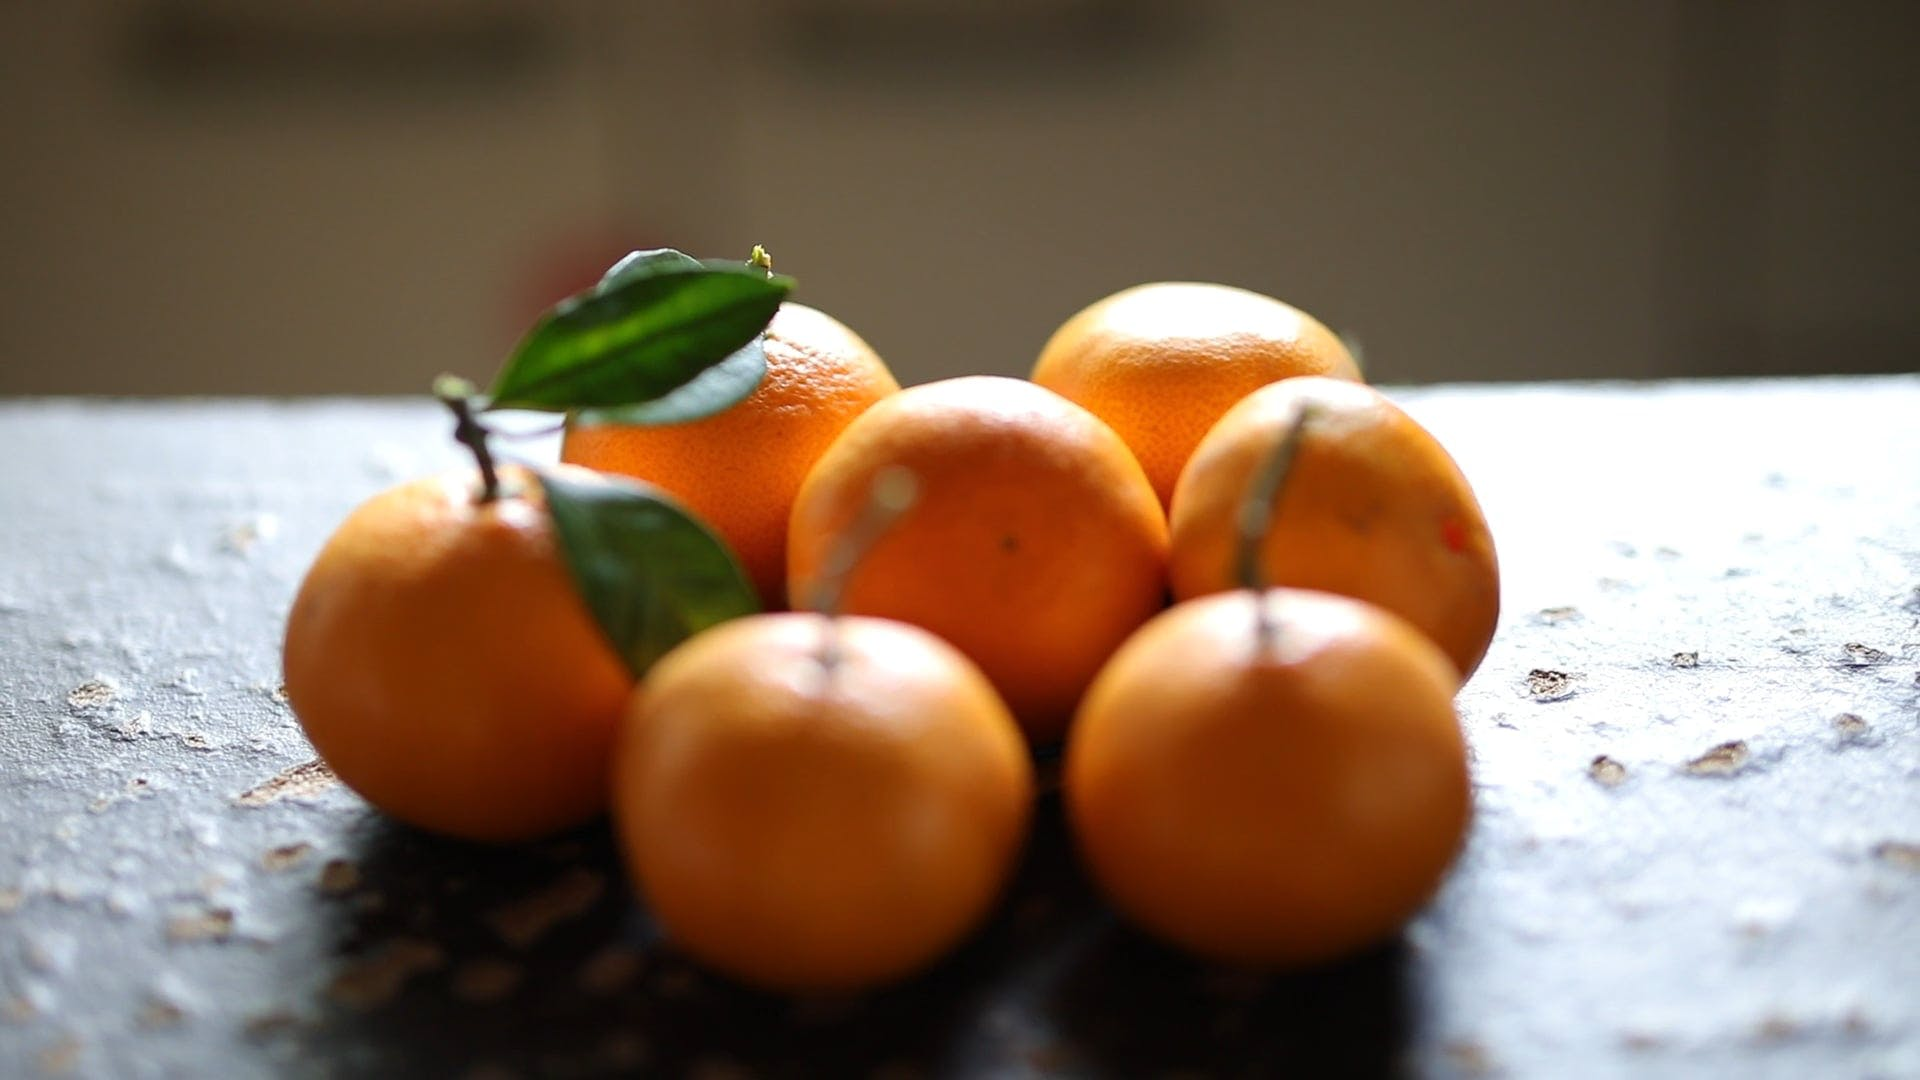 Sweet Oranges On The Table